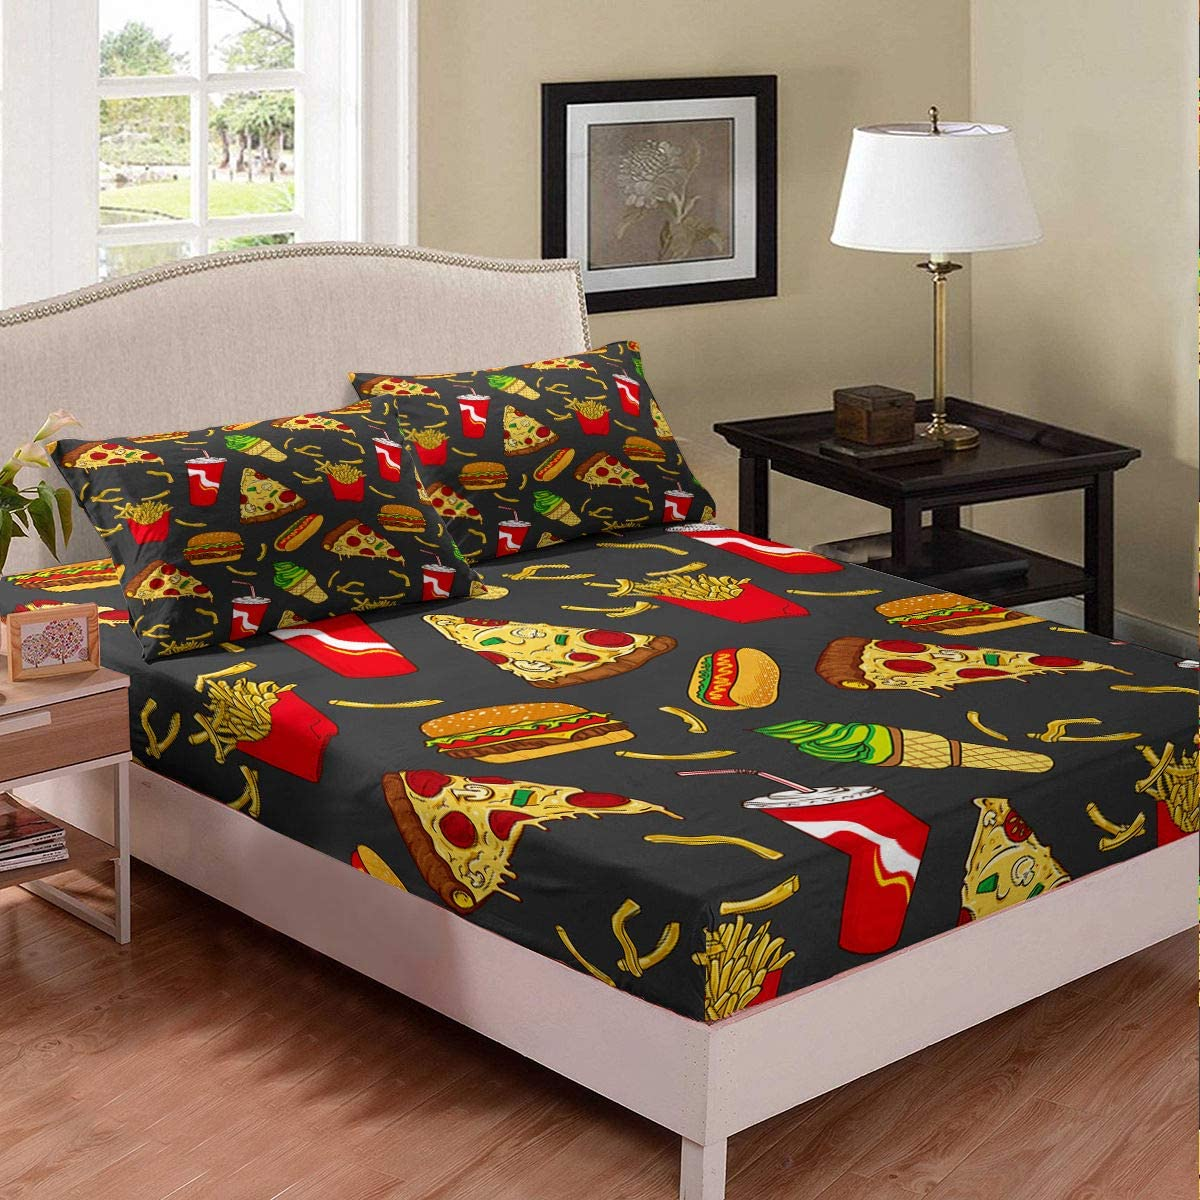 Cartoon Fast Food Sheet Set Pizza Bread Ice Cream Cola Burger Fries Bedding Set Summer Vacation Style Fitted Sheet Decorative Boys Girls Room Twin Size with 1 Pillow Sham Breathable Durable